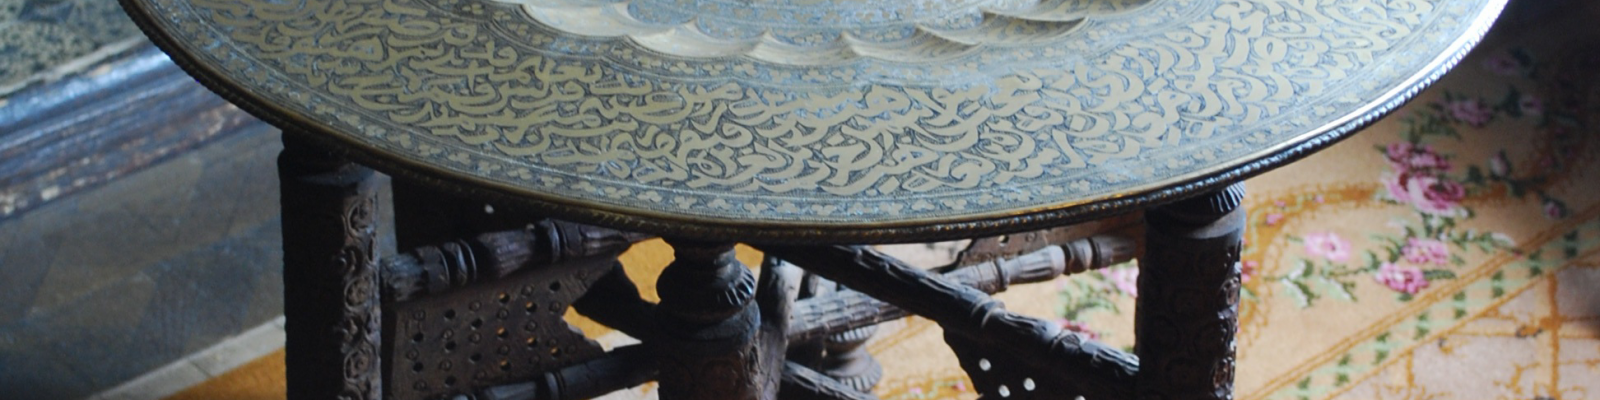 View looking down onto decorative metal tray round table top on carved wooden legs